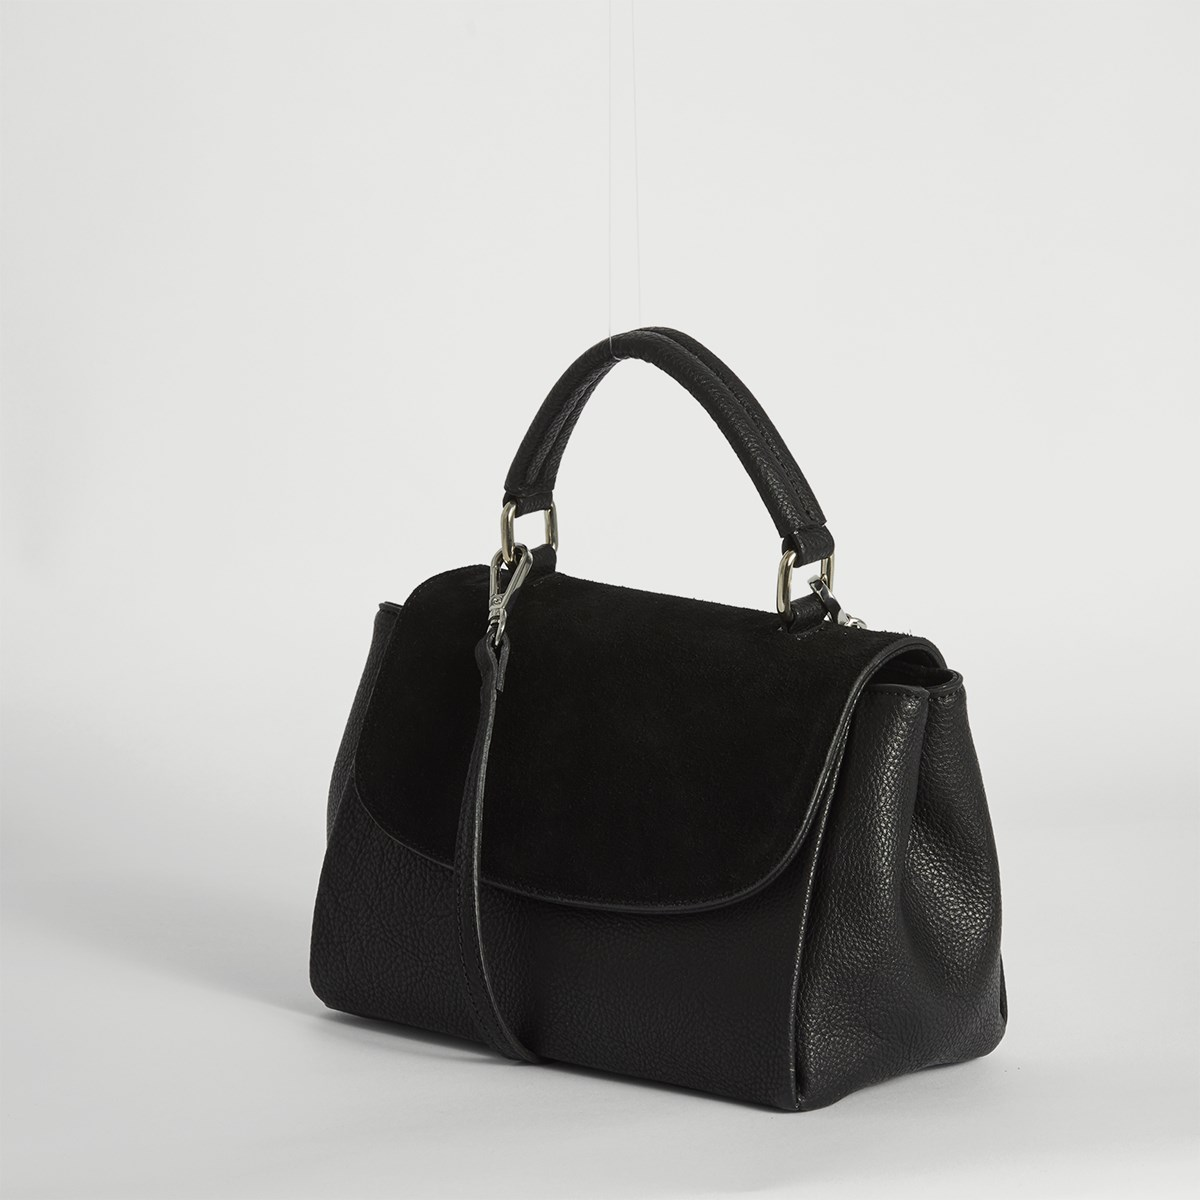 Women's Top Handle Crossbody Bag in Black